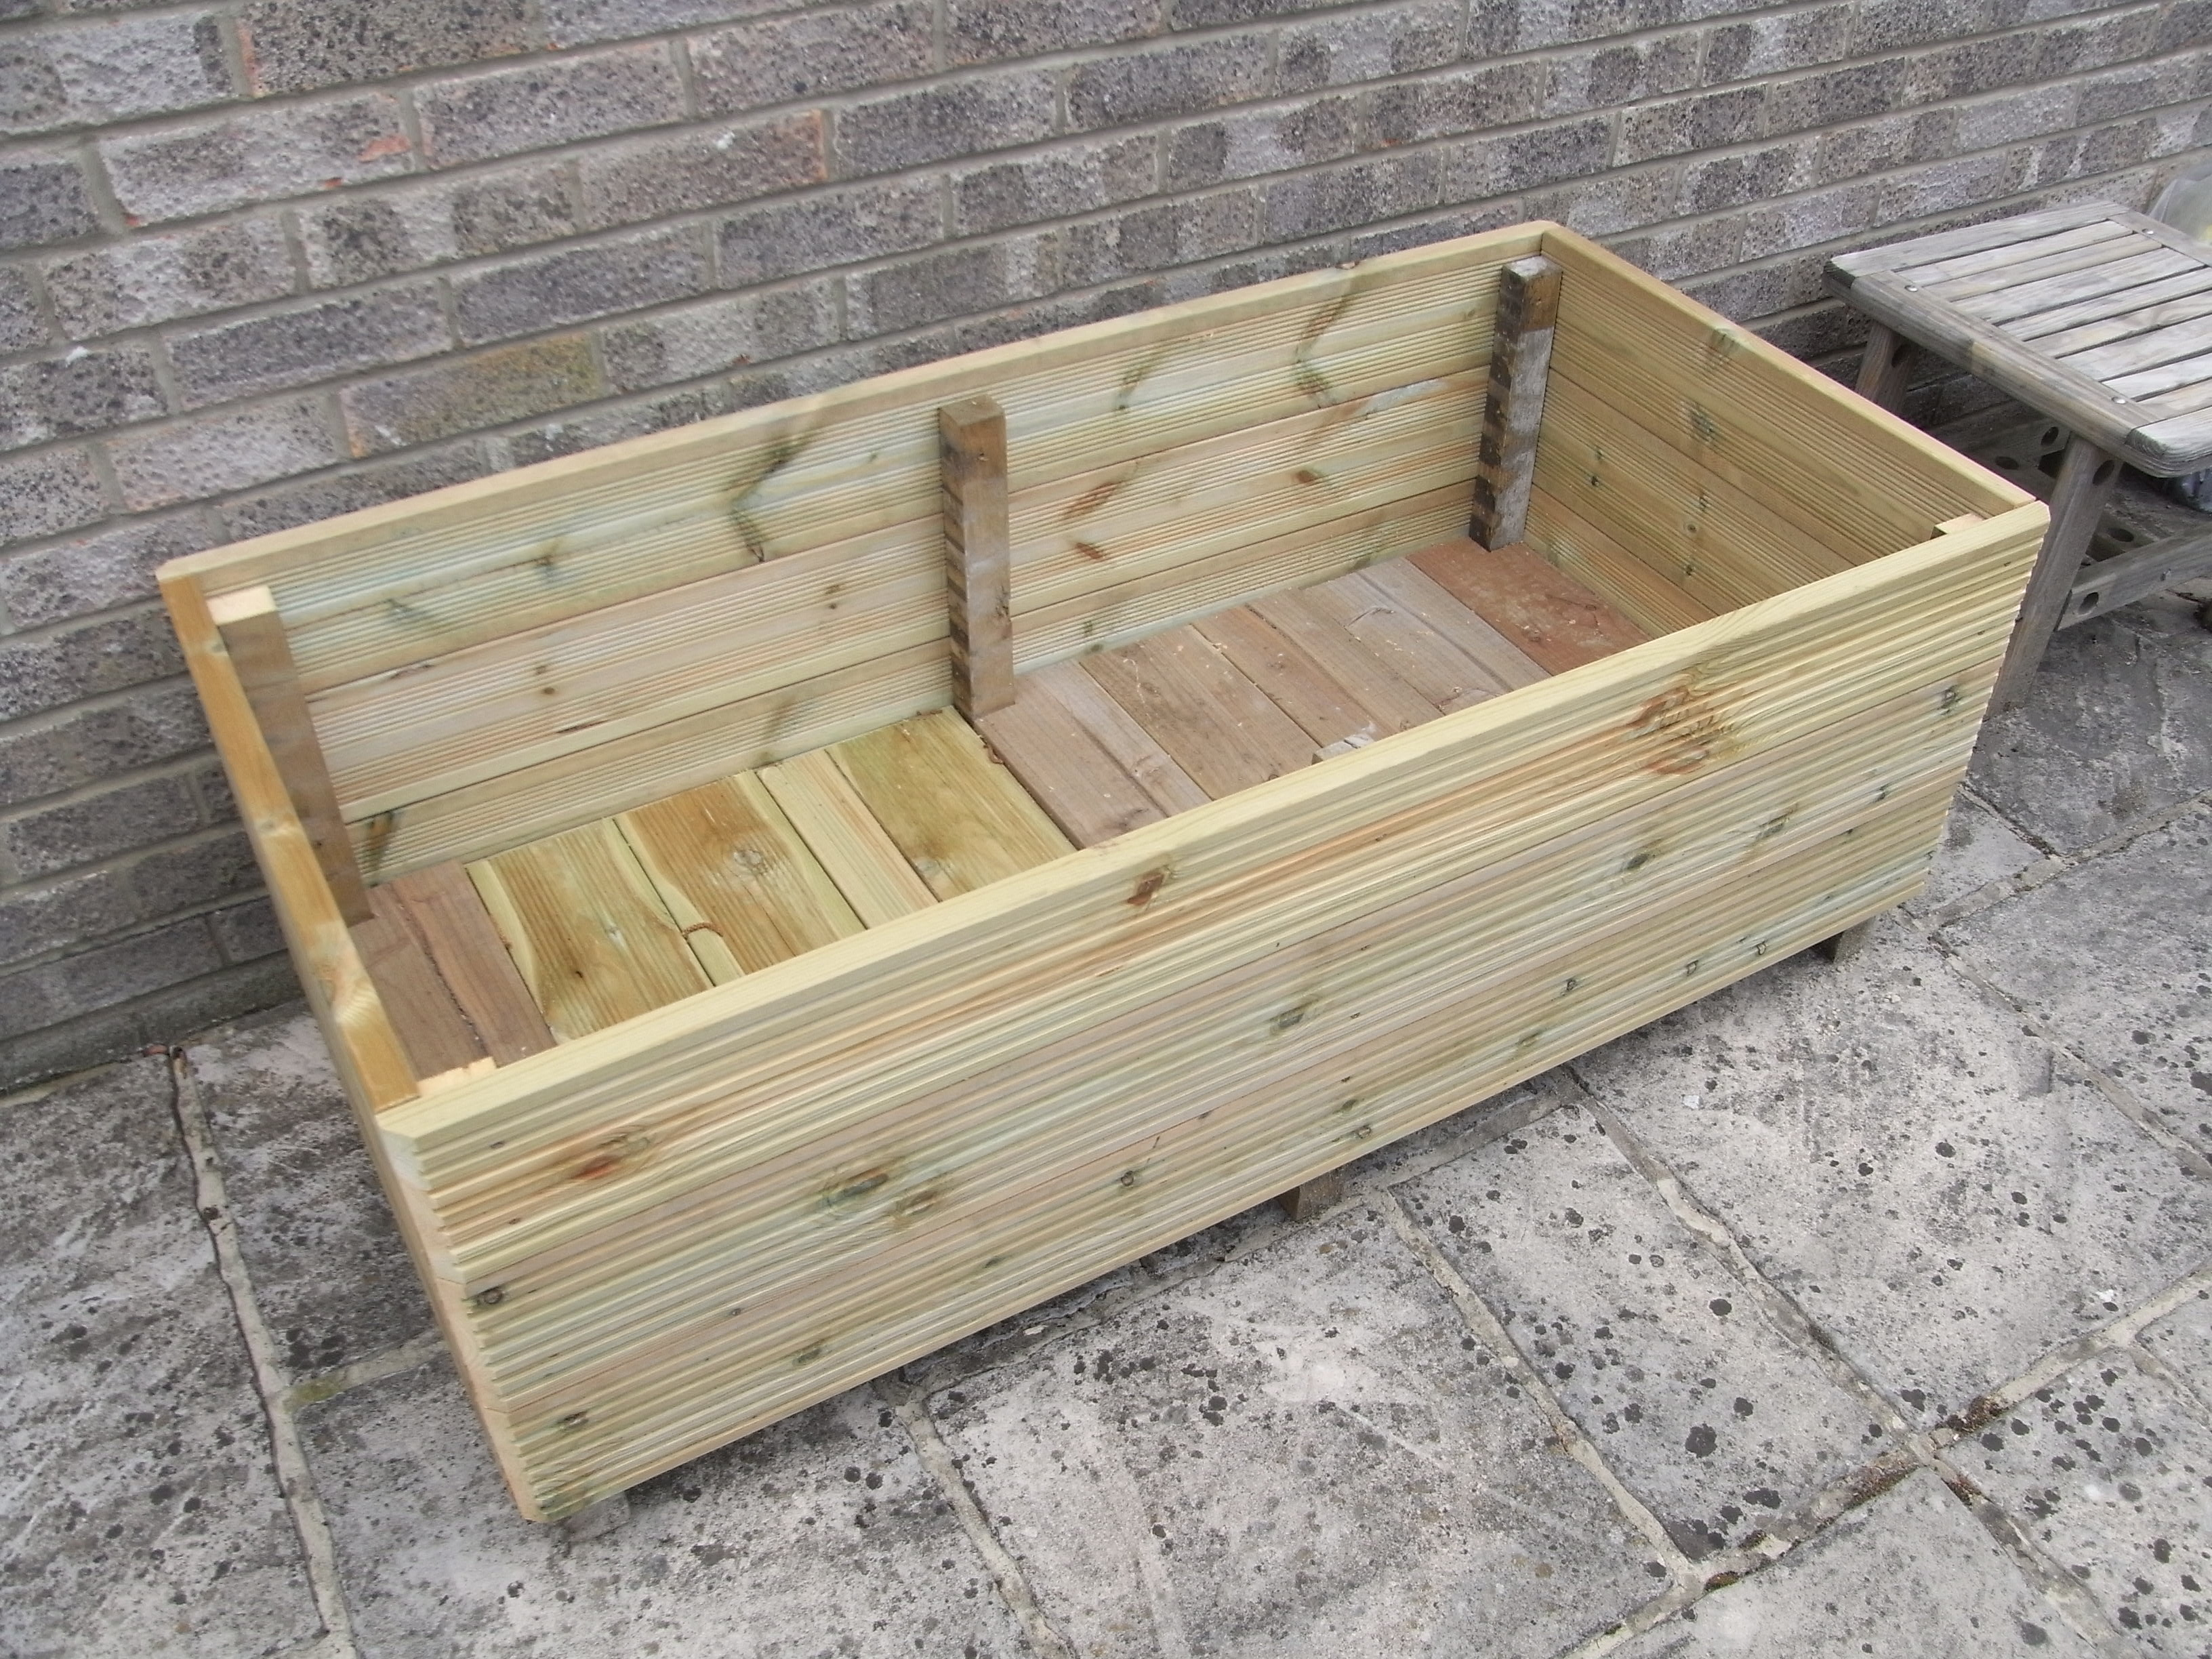 How to build a planter box for a deck - Make A Garden Planter From Decking